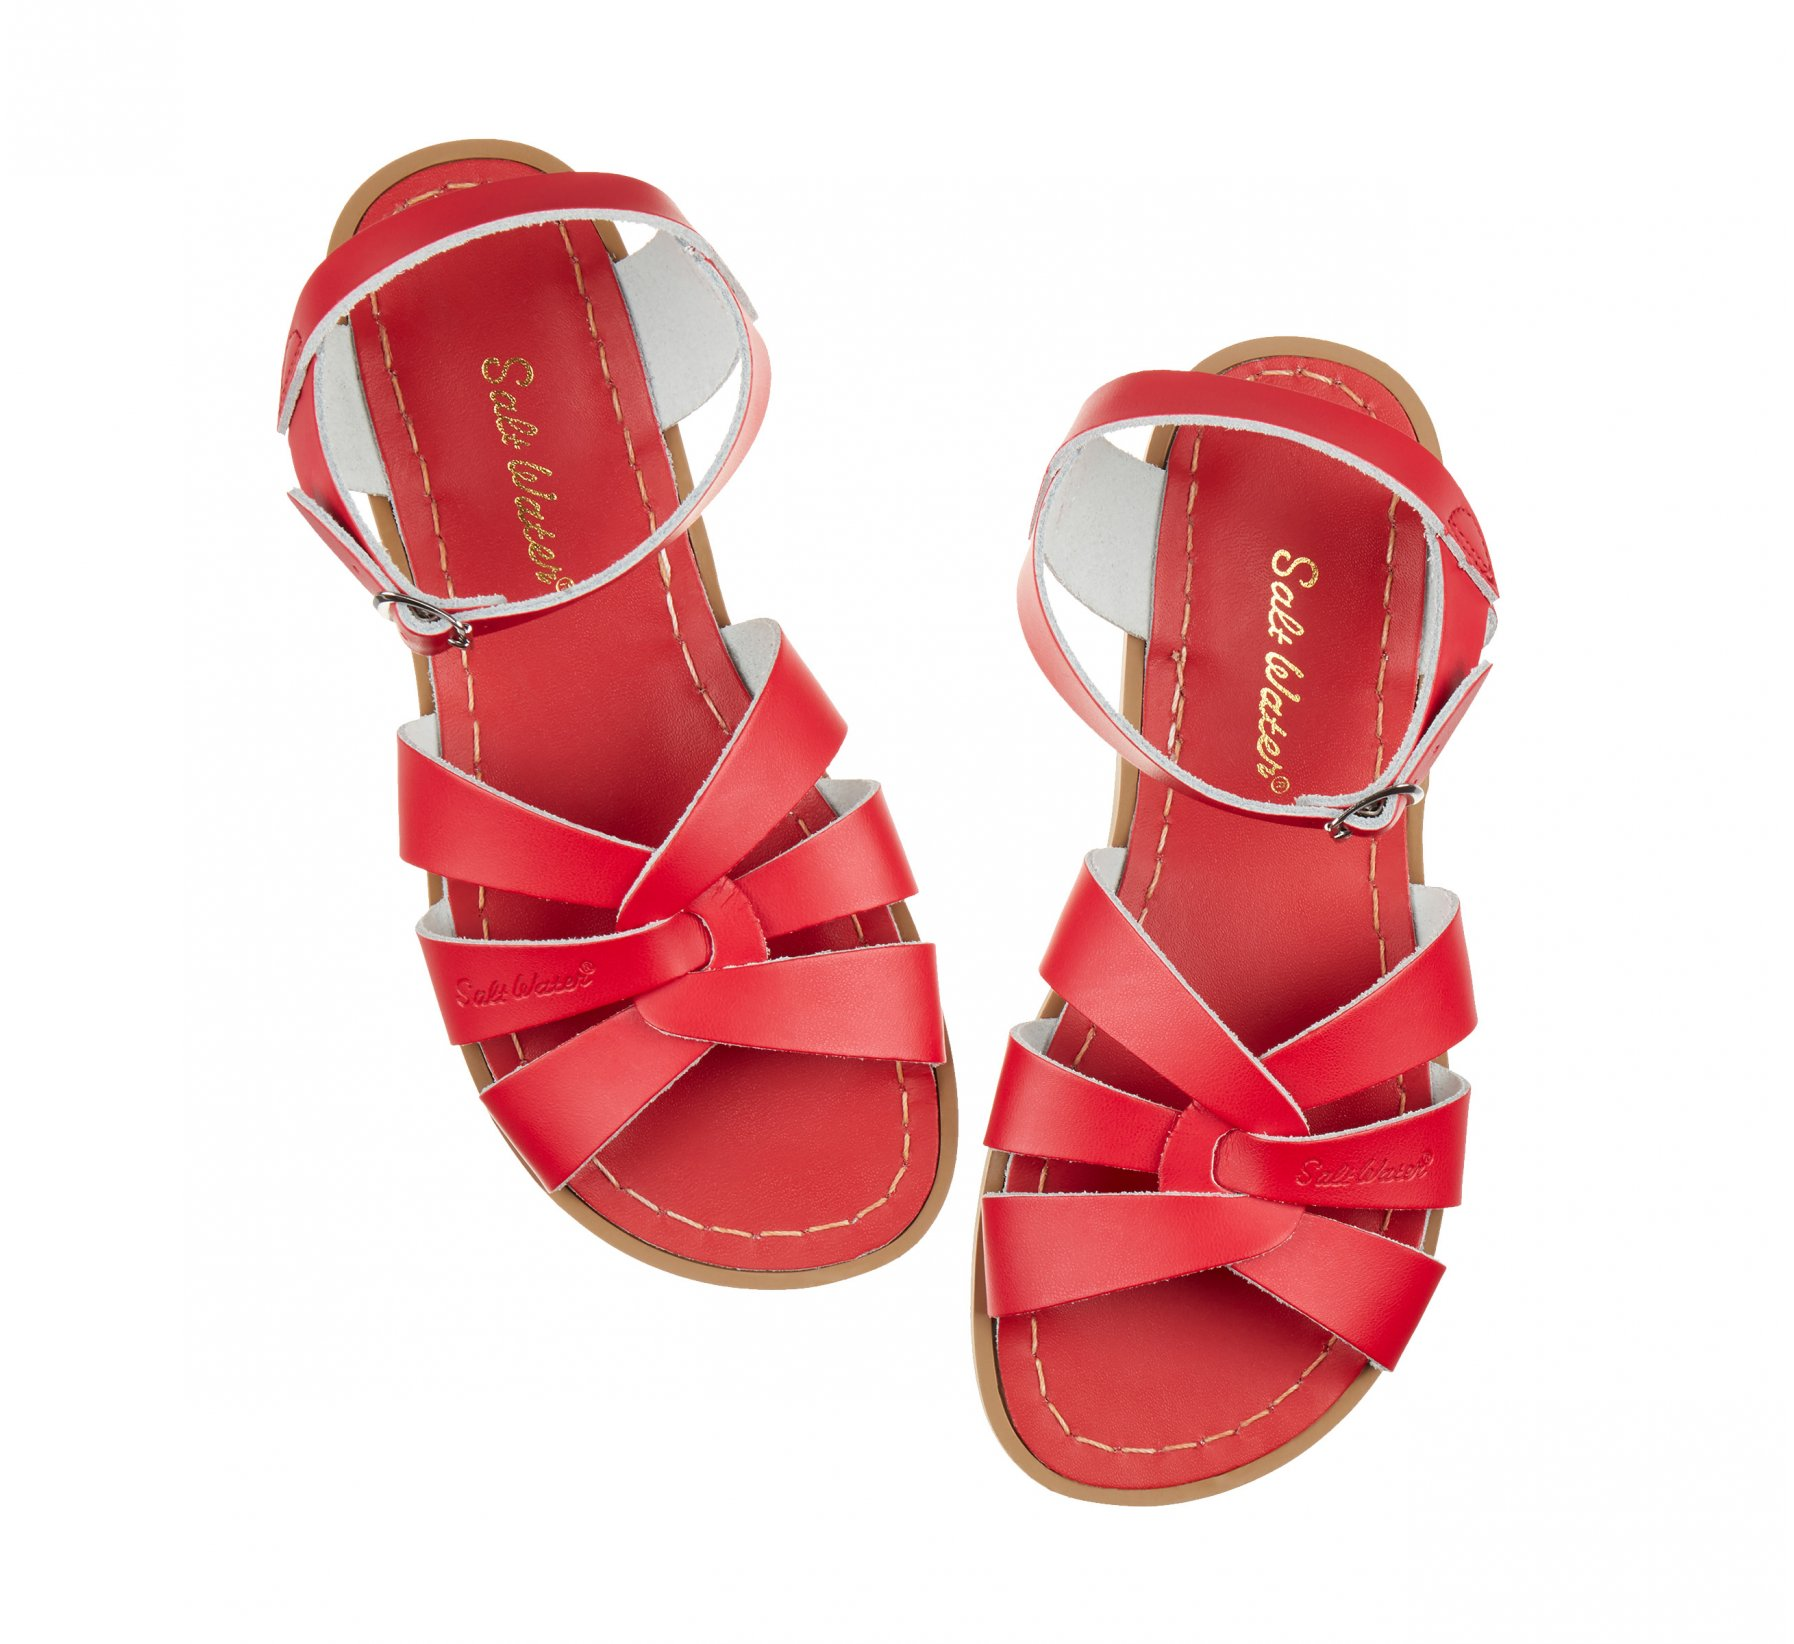 Original Merah - Salt Water Sandals